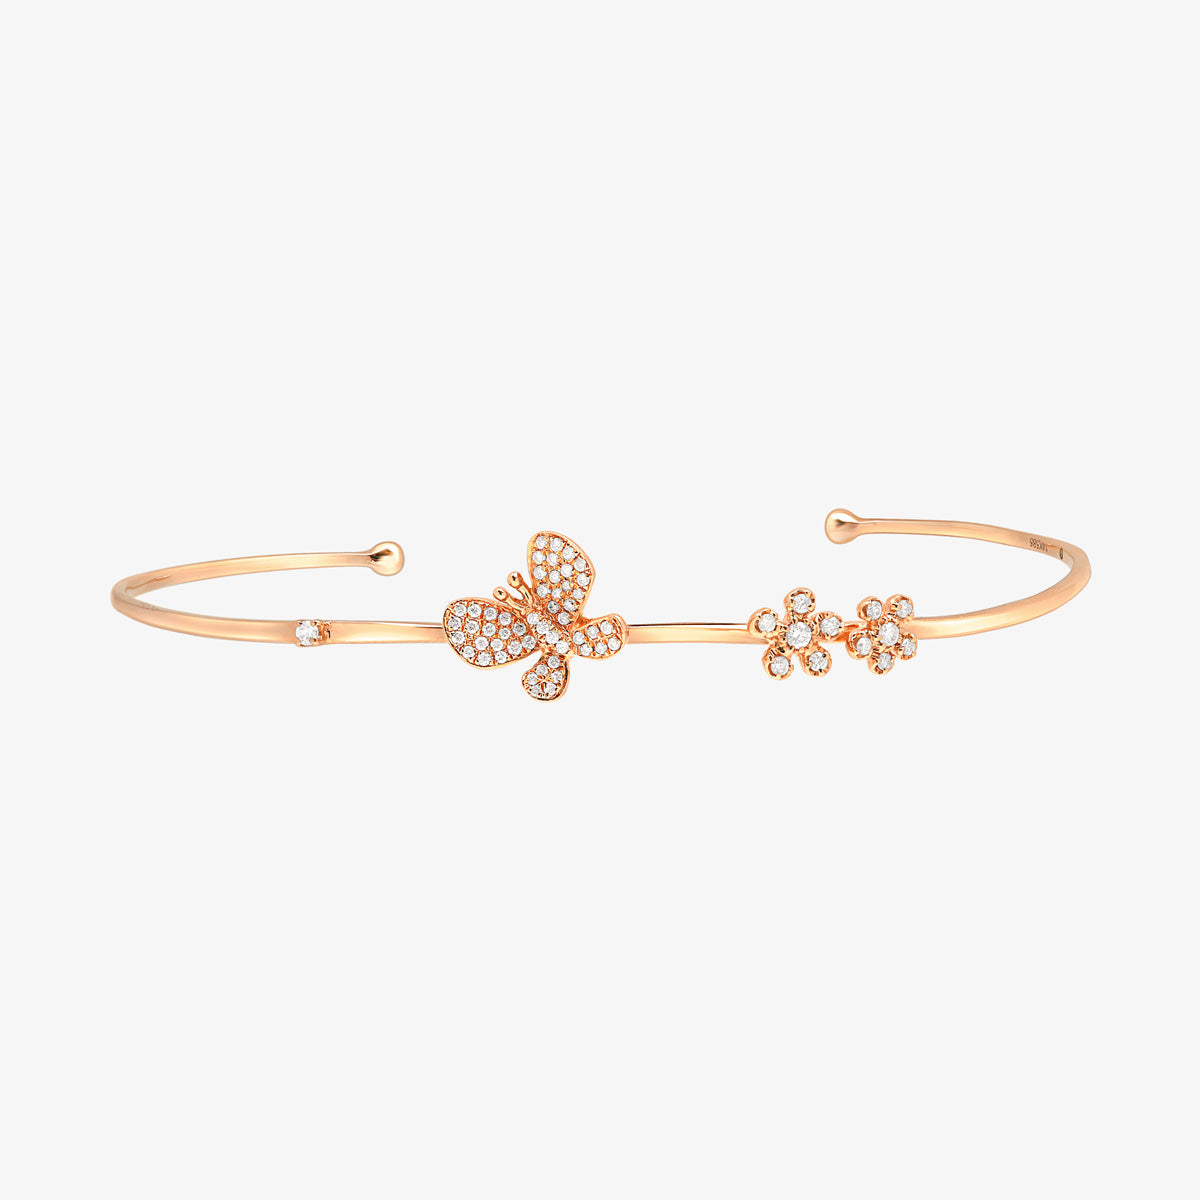 Butterfly And Flowers Gold And Diamond Cuff Bracelet - estellacollection